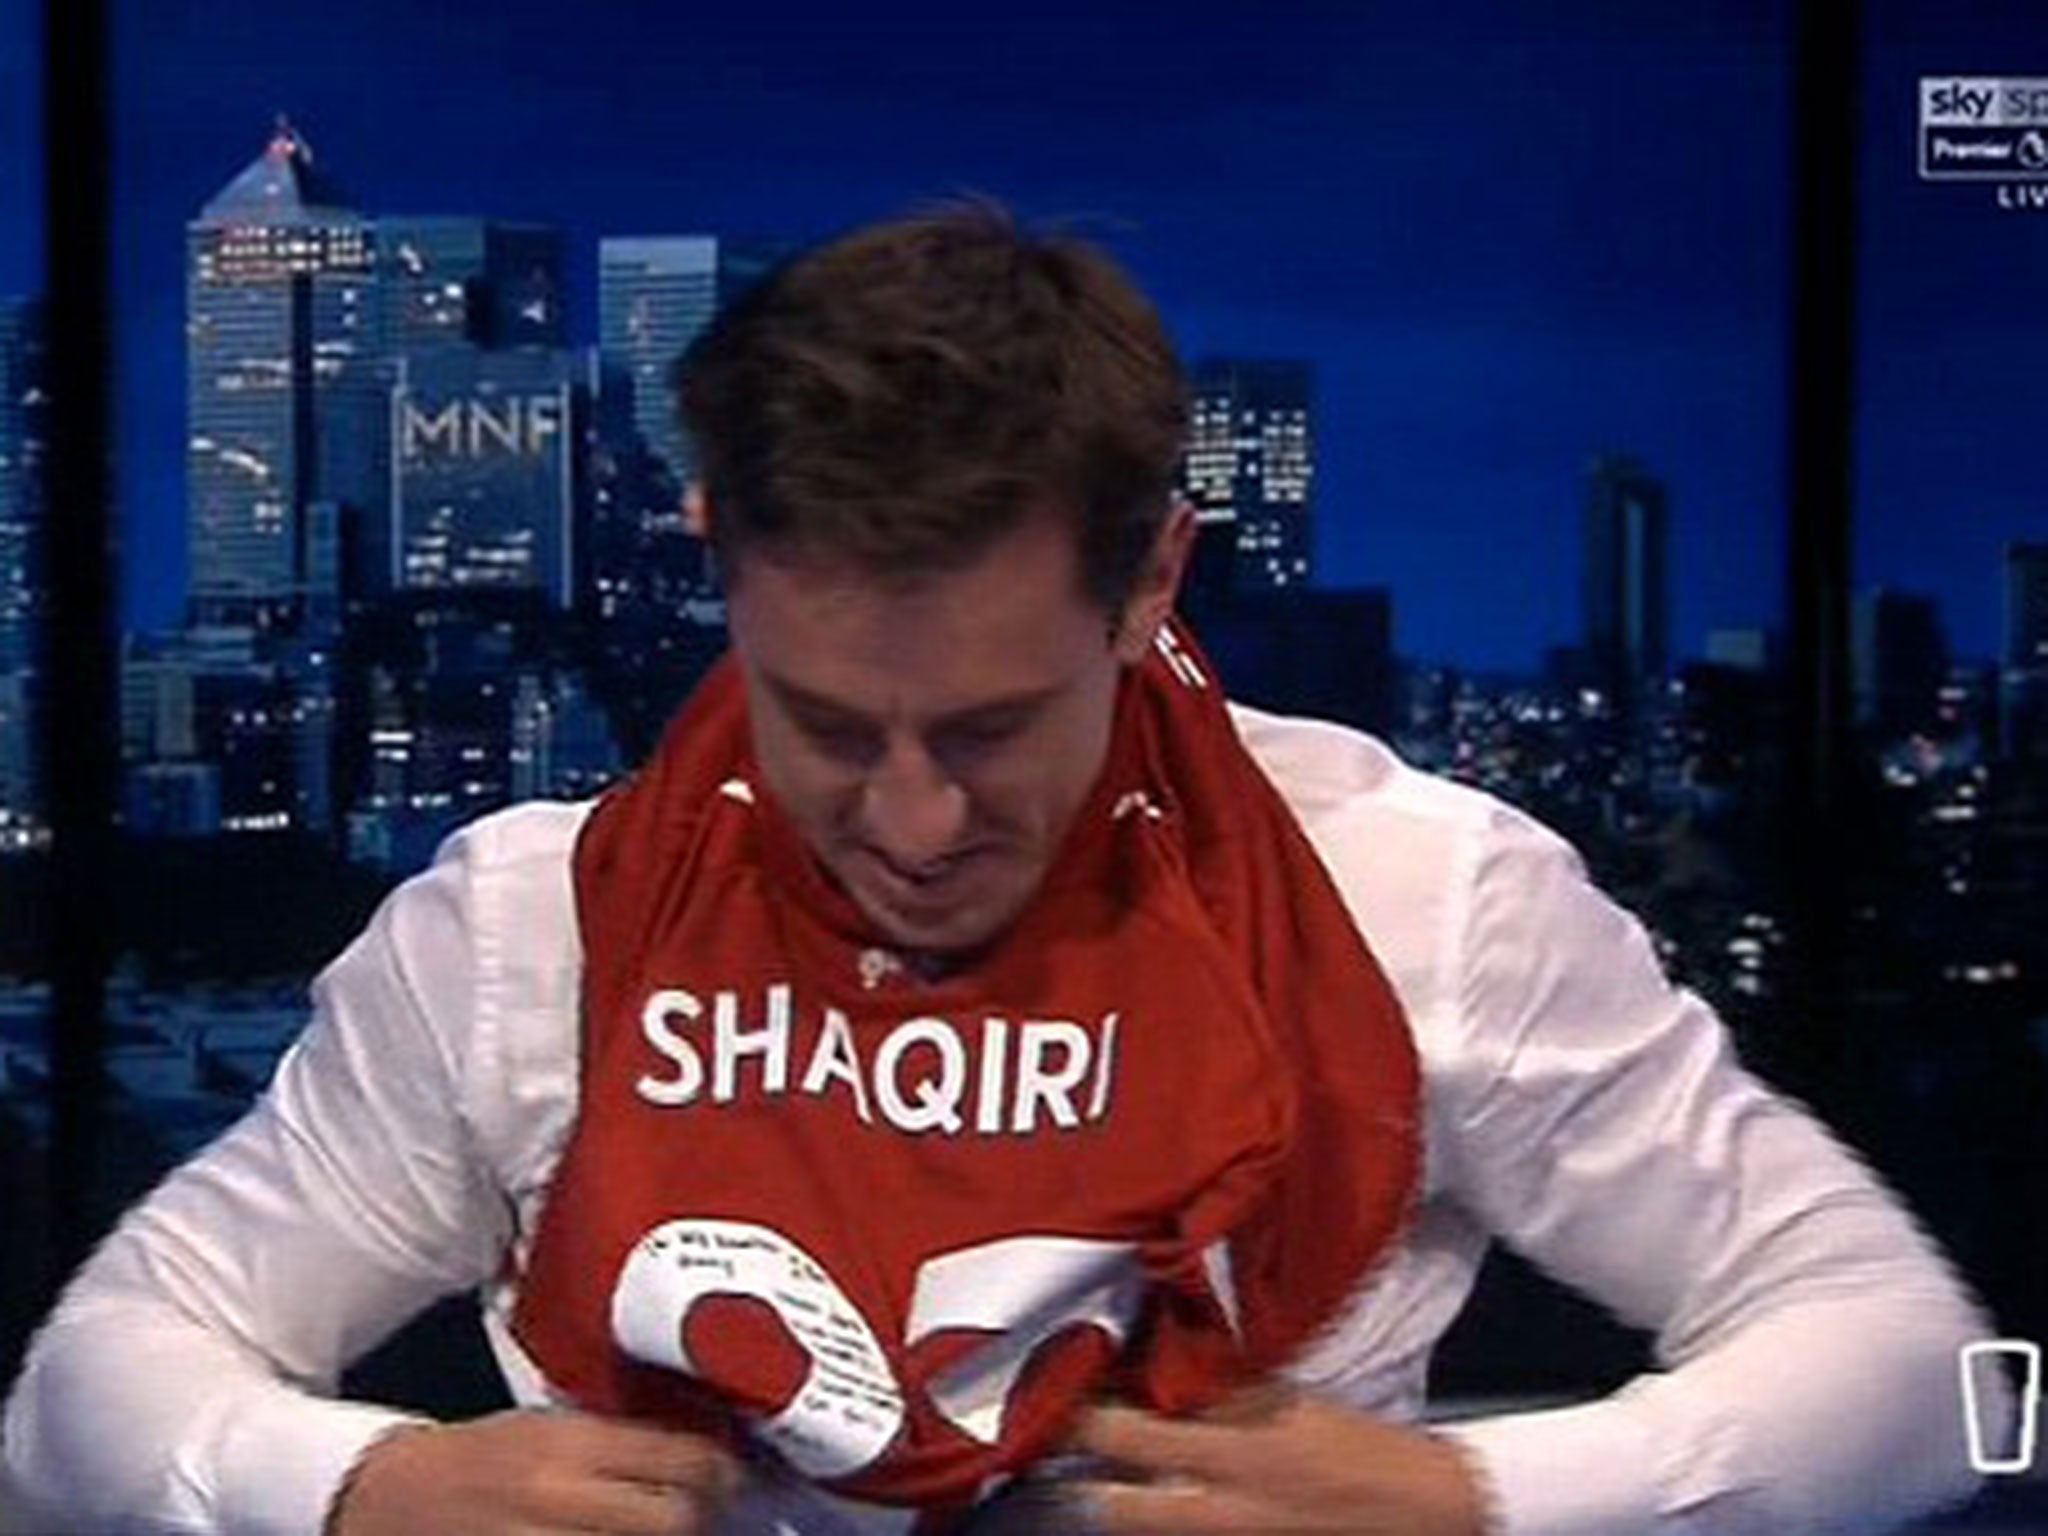 adb165d03fa Gary Neville and Jamie Carragher wear Liverpool and Manchester United shirts  as Monday Night Football returns